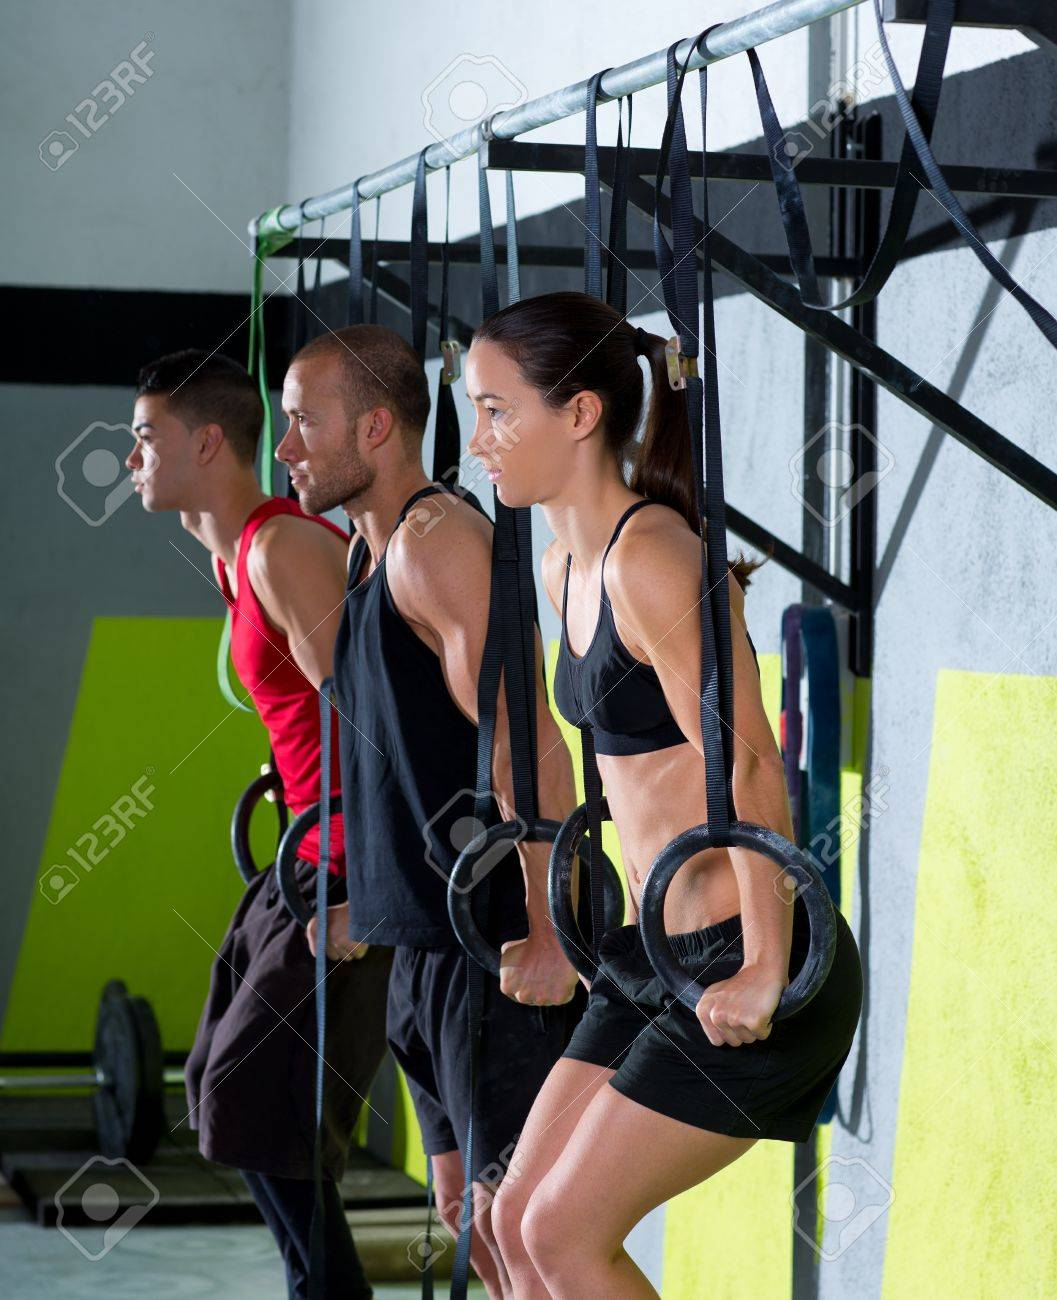 Crossfit dip ring group workout at gym dipping in a row exercise Stock Photo - 17050640